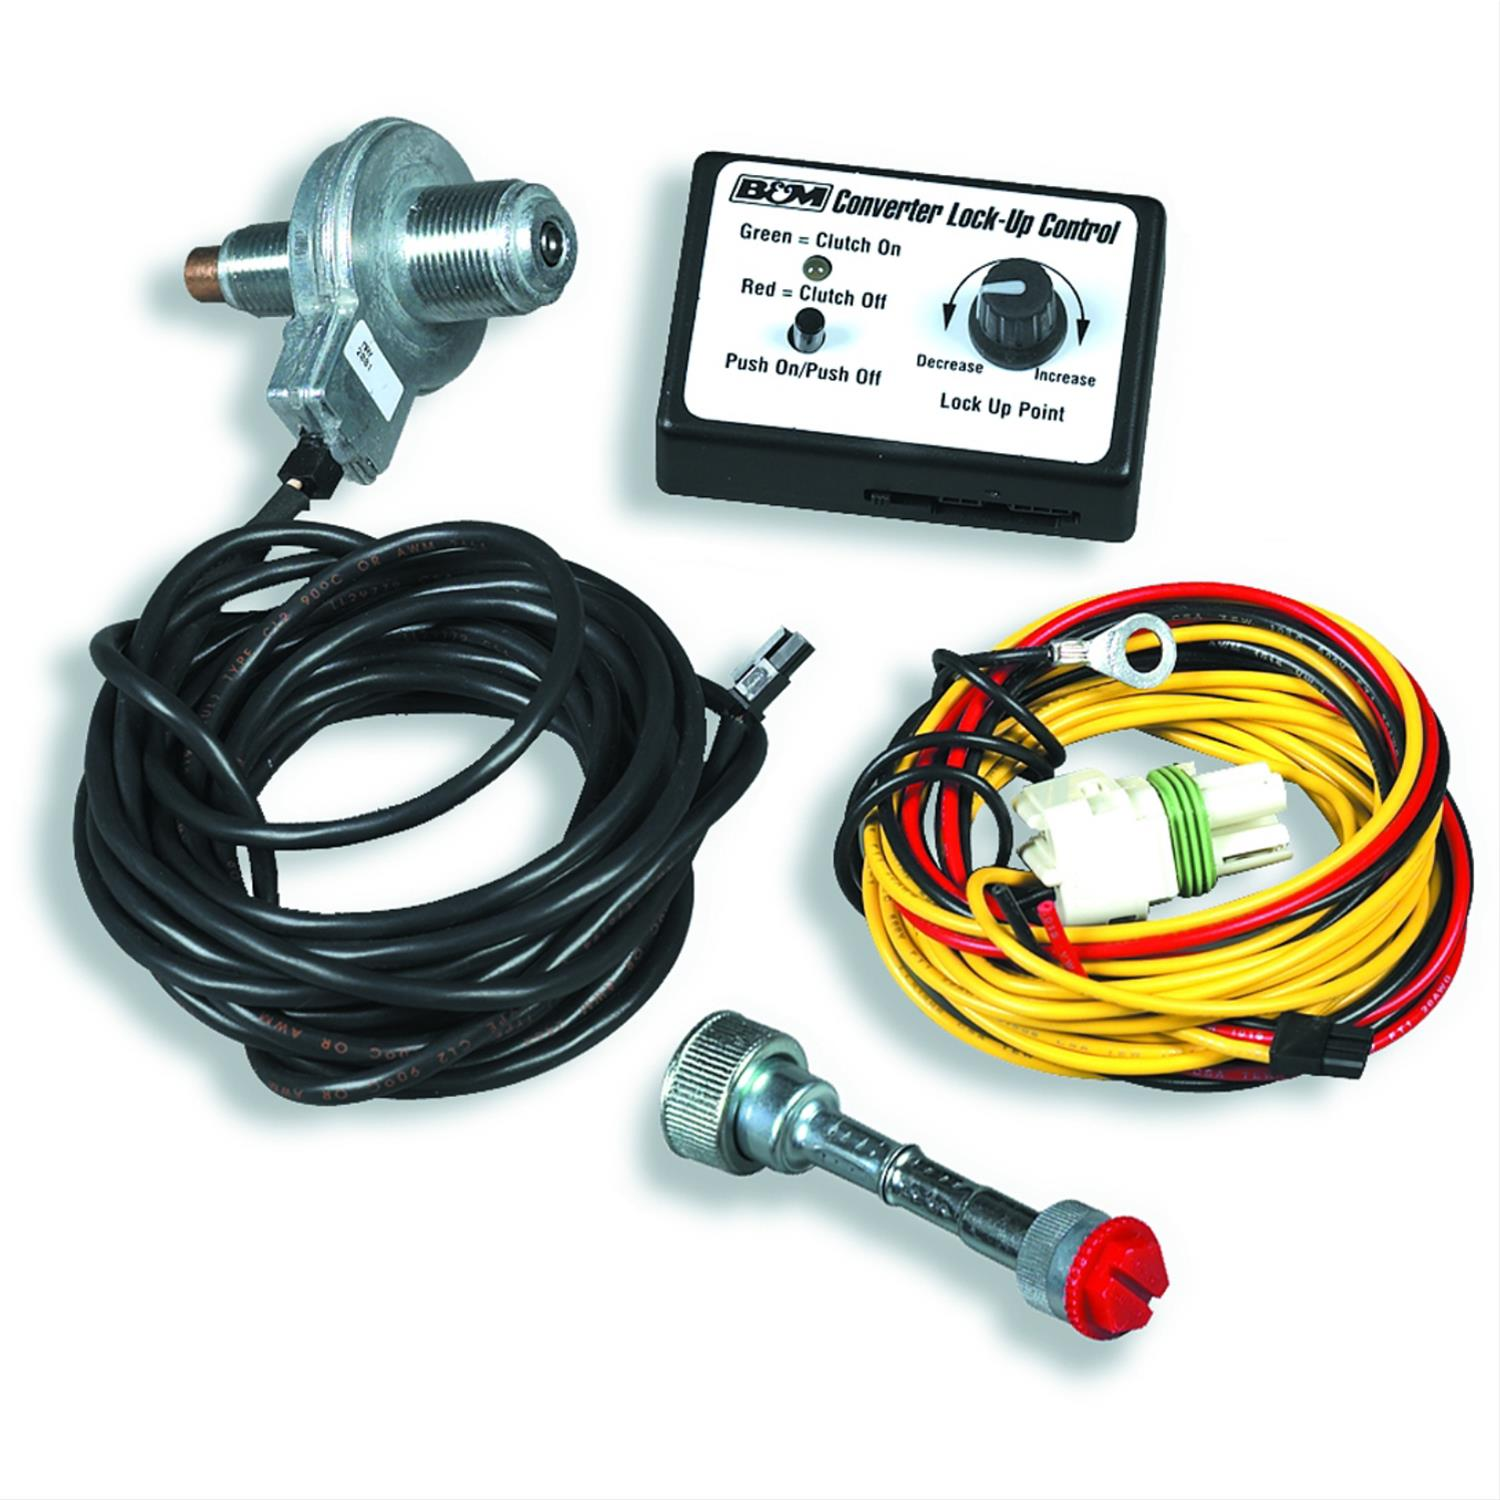 lock up 700r4 manual diagram 6 way wiring for trailer lights b andm converter lockup controls 70244 free shipping on